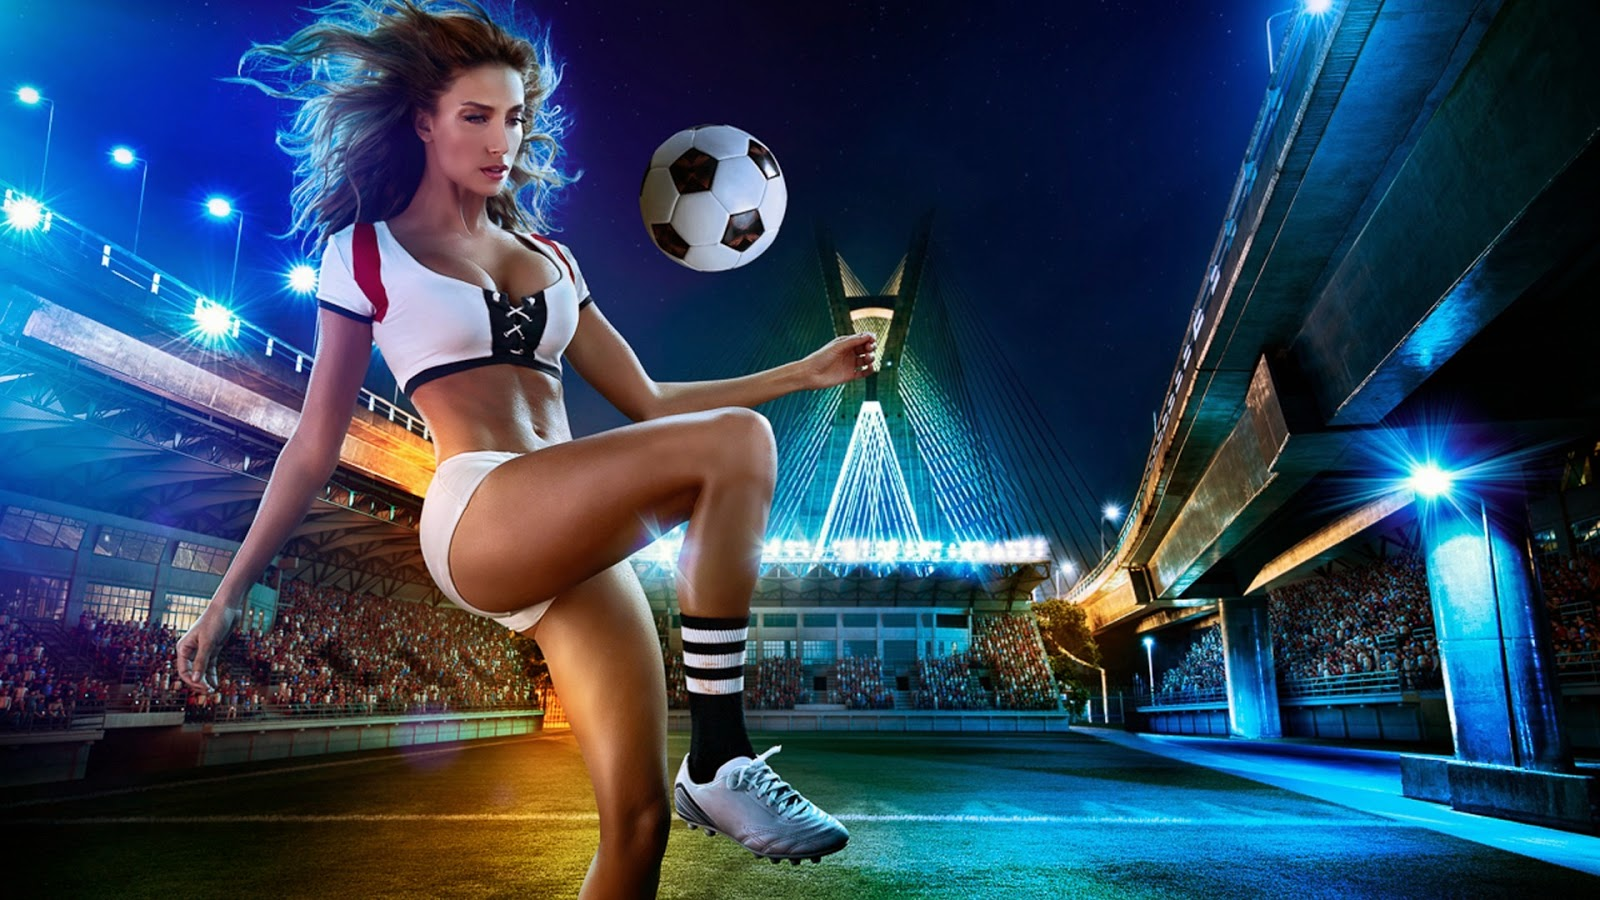 Brazil World Cup 2014 Football Baby Sexy Wallpaper